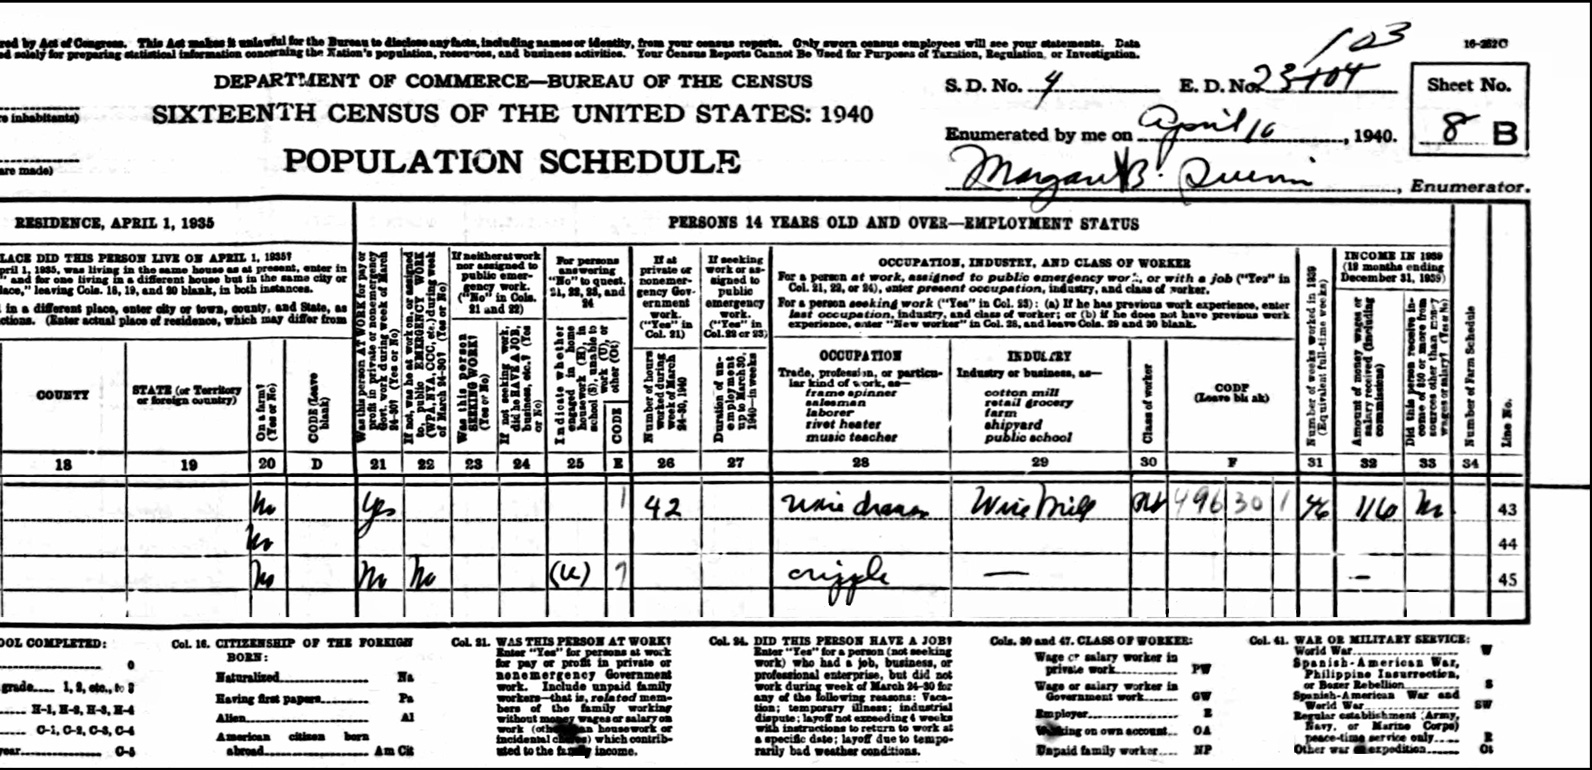 1940 US Federal Census Record for the Michael Dusavage Family (Right)